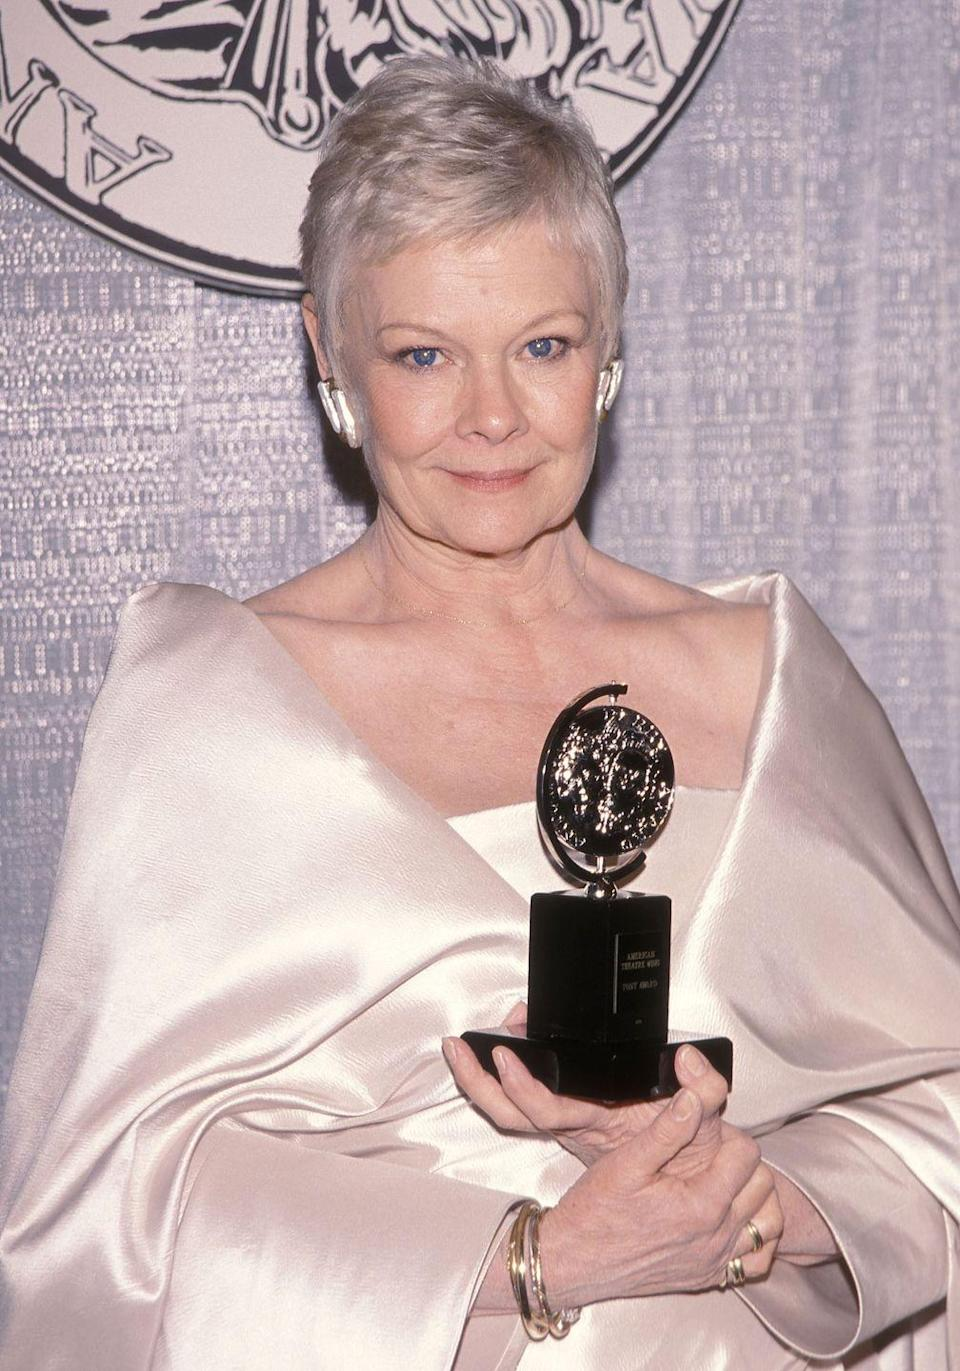 <p>Dench attended the 53rd Annual Tony Awards in New York City and picked up a Tony for Best Actress in a Play for her role in <em>Amy's View.</em><br></p>